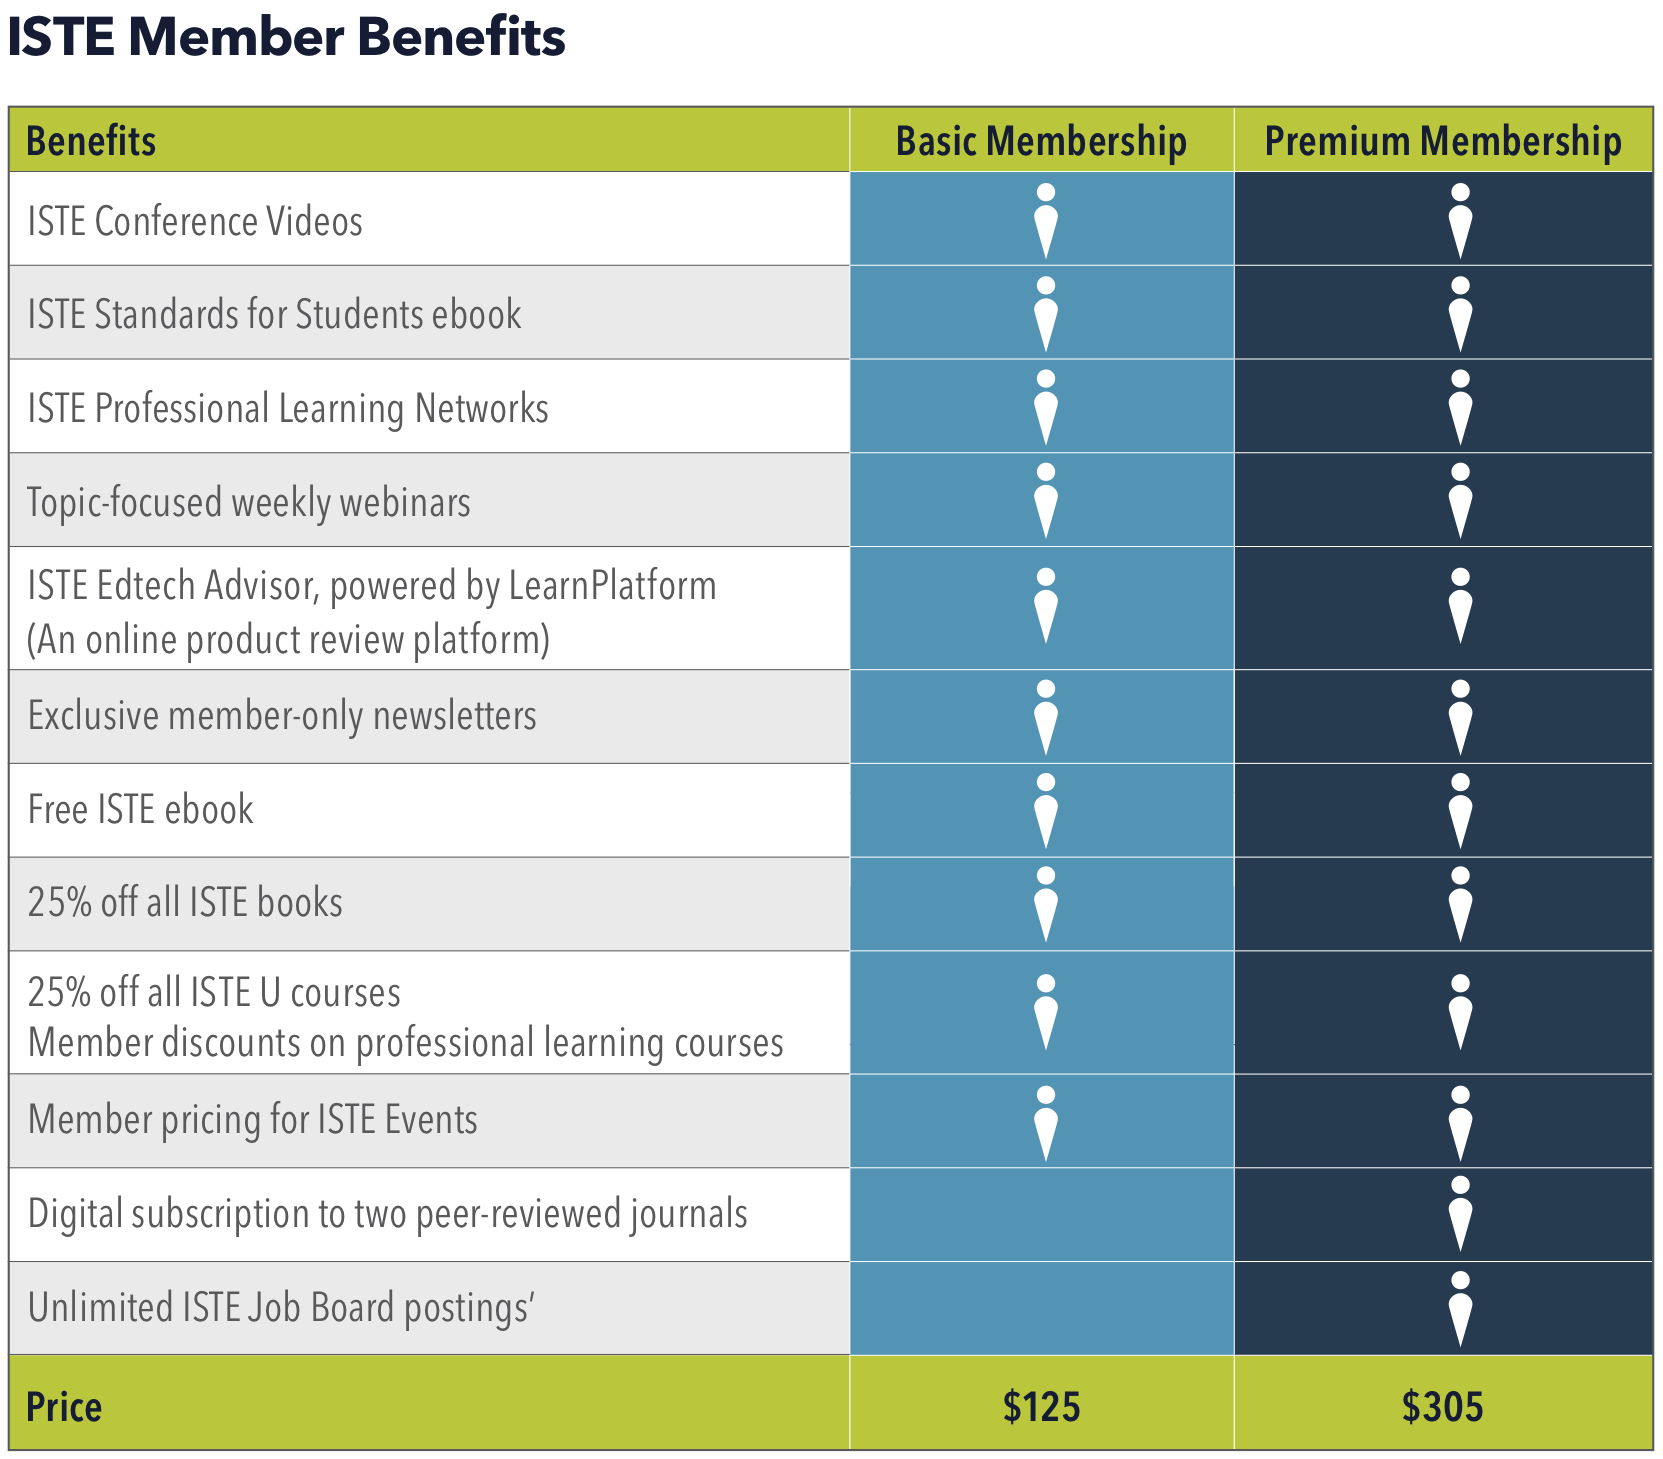 Table listing ISTE member benefits